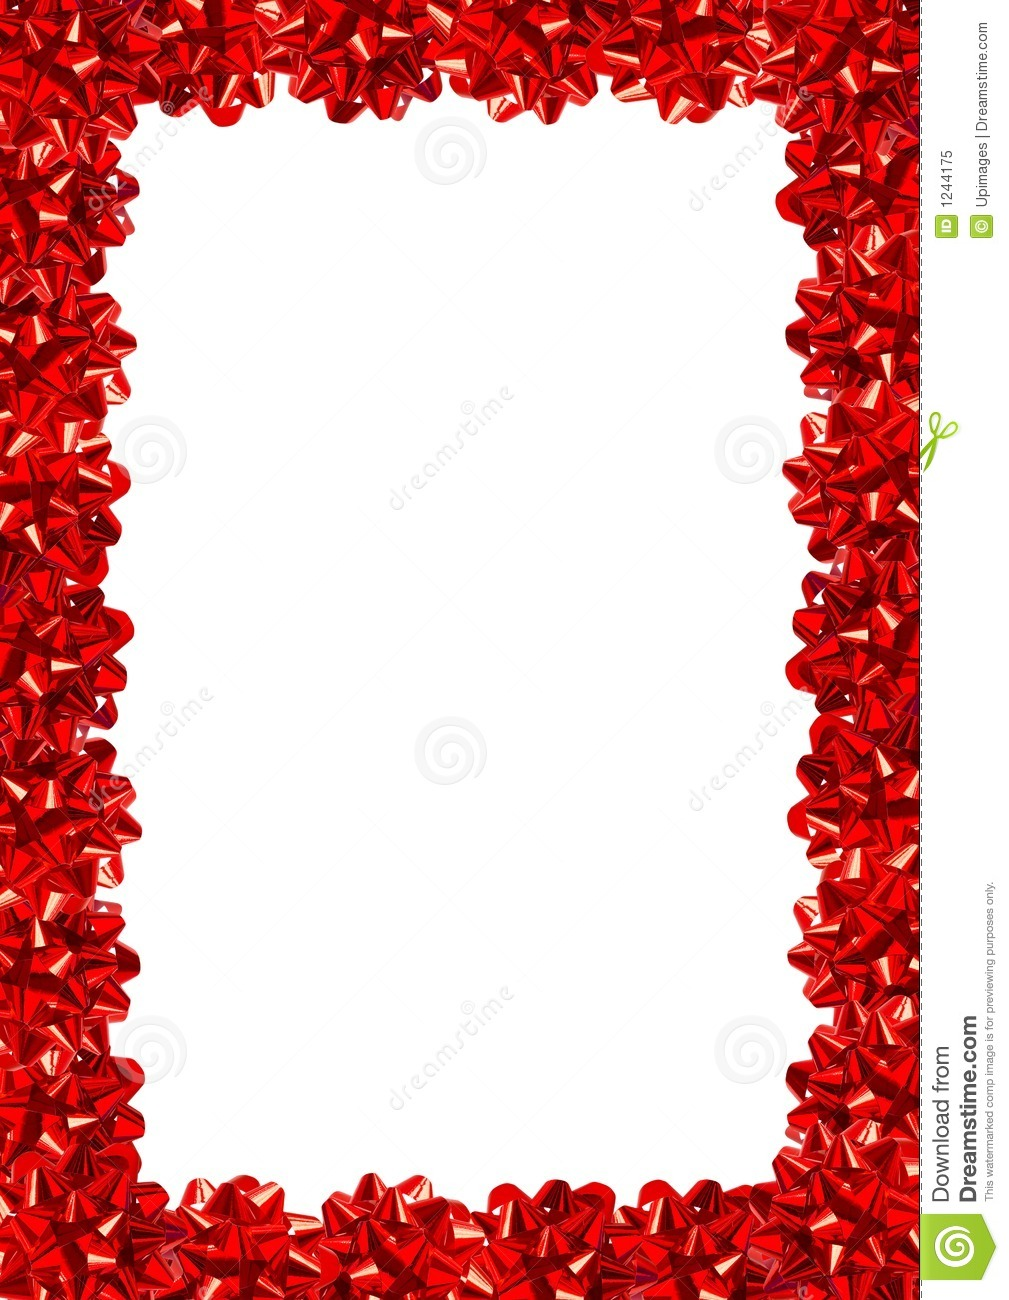 Red gift bows border with clipping path for easy background removing - Gift Bows Border Royalty Free Stock Photo Background Border Clipping Gift Path Red